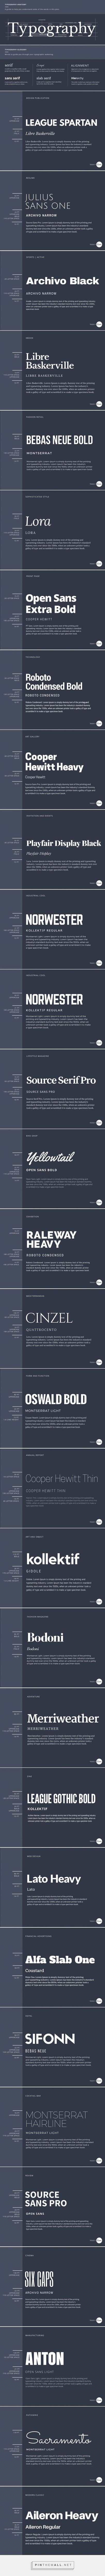 The Ultimate Guide to Font Pairing - https://designschool.canva.com/blog/the-ultimate-guide-to-font-pairing/: